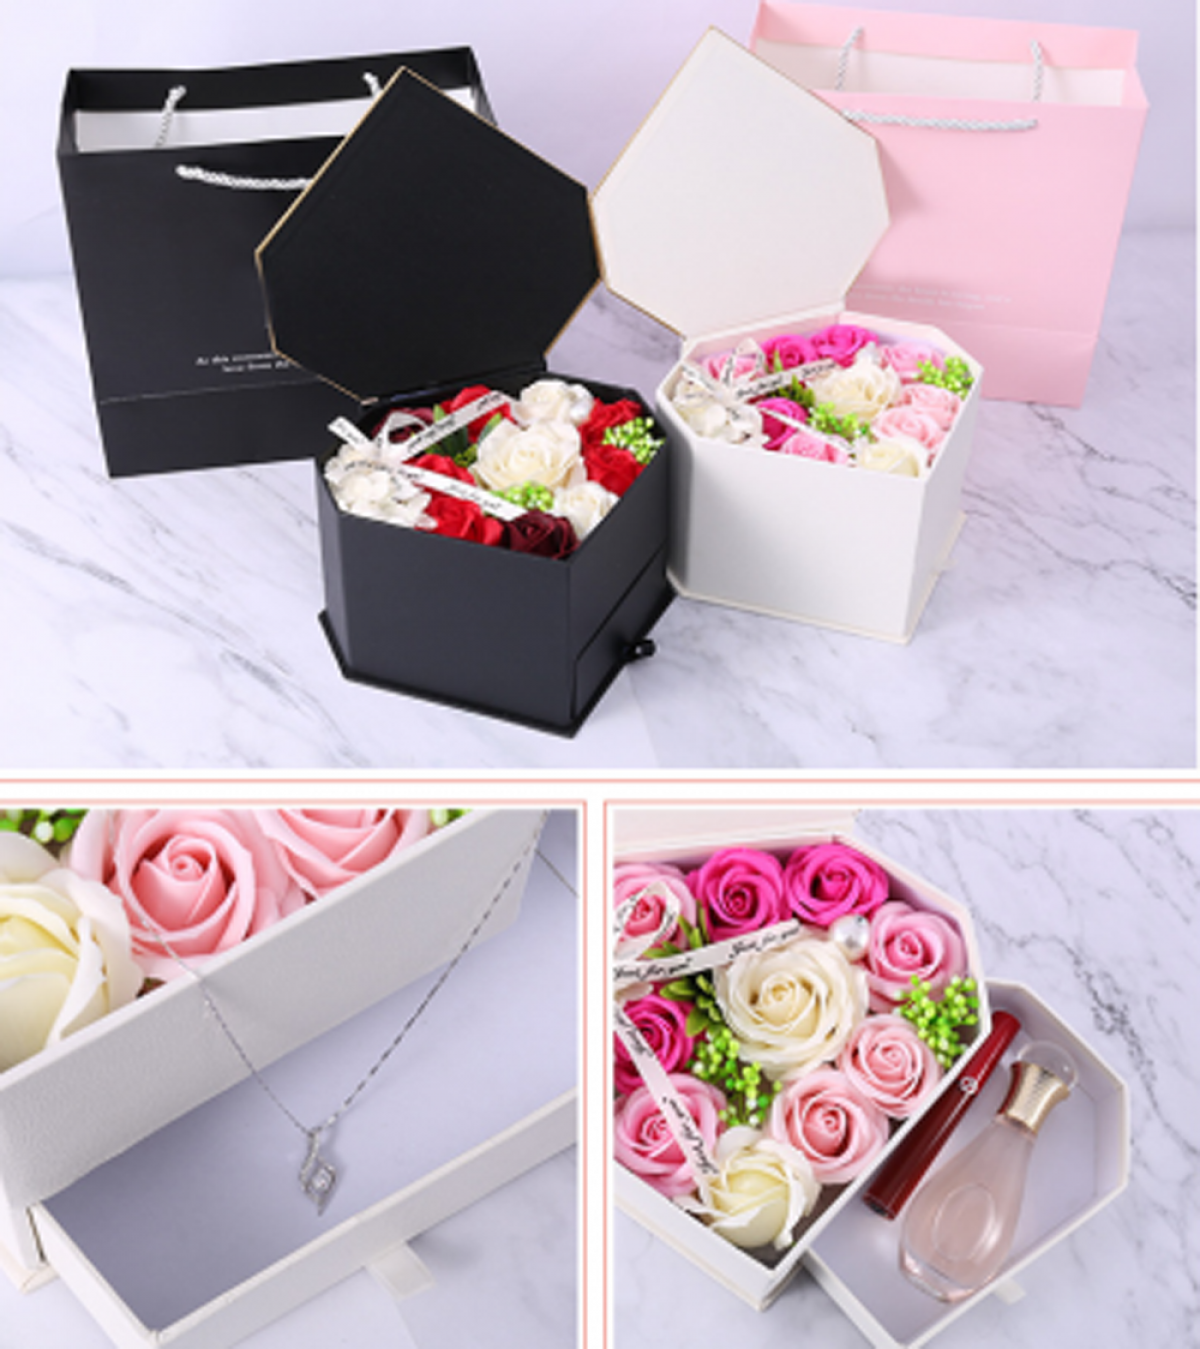 A box containing sweet smelling perfume, lipstick, and a necklace is a reliable option from the list of gifts for the special day.